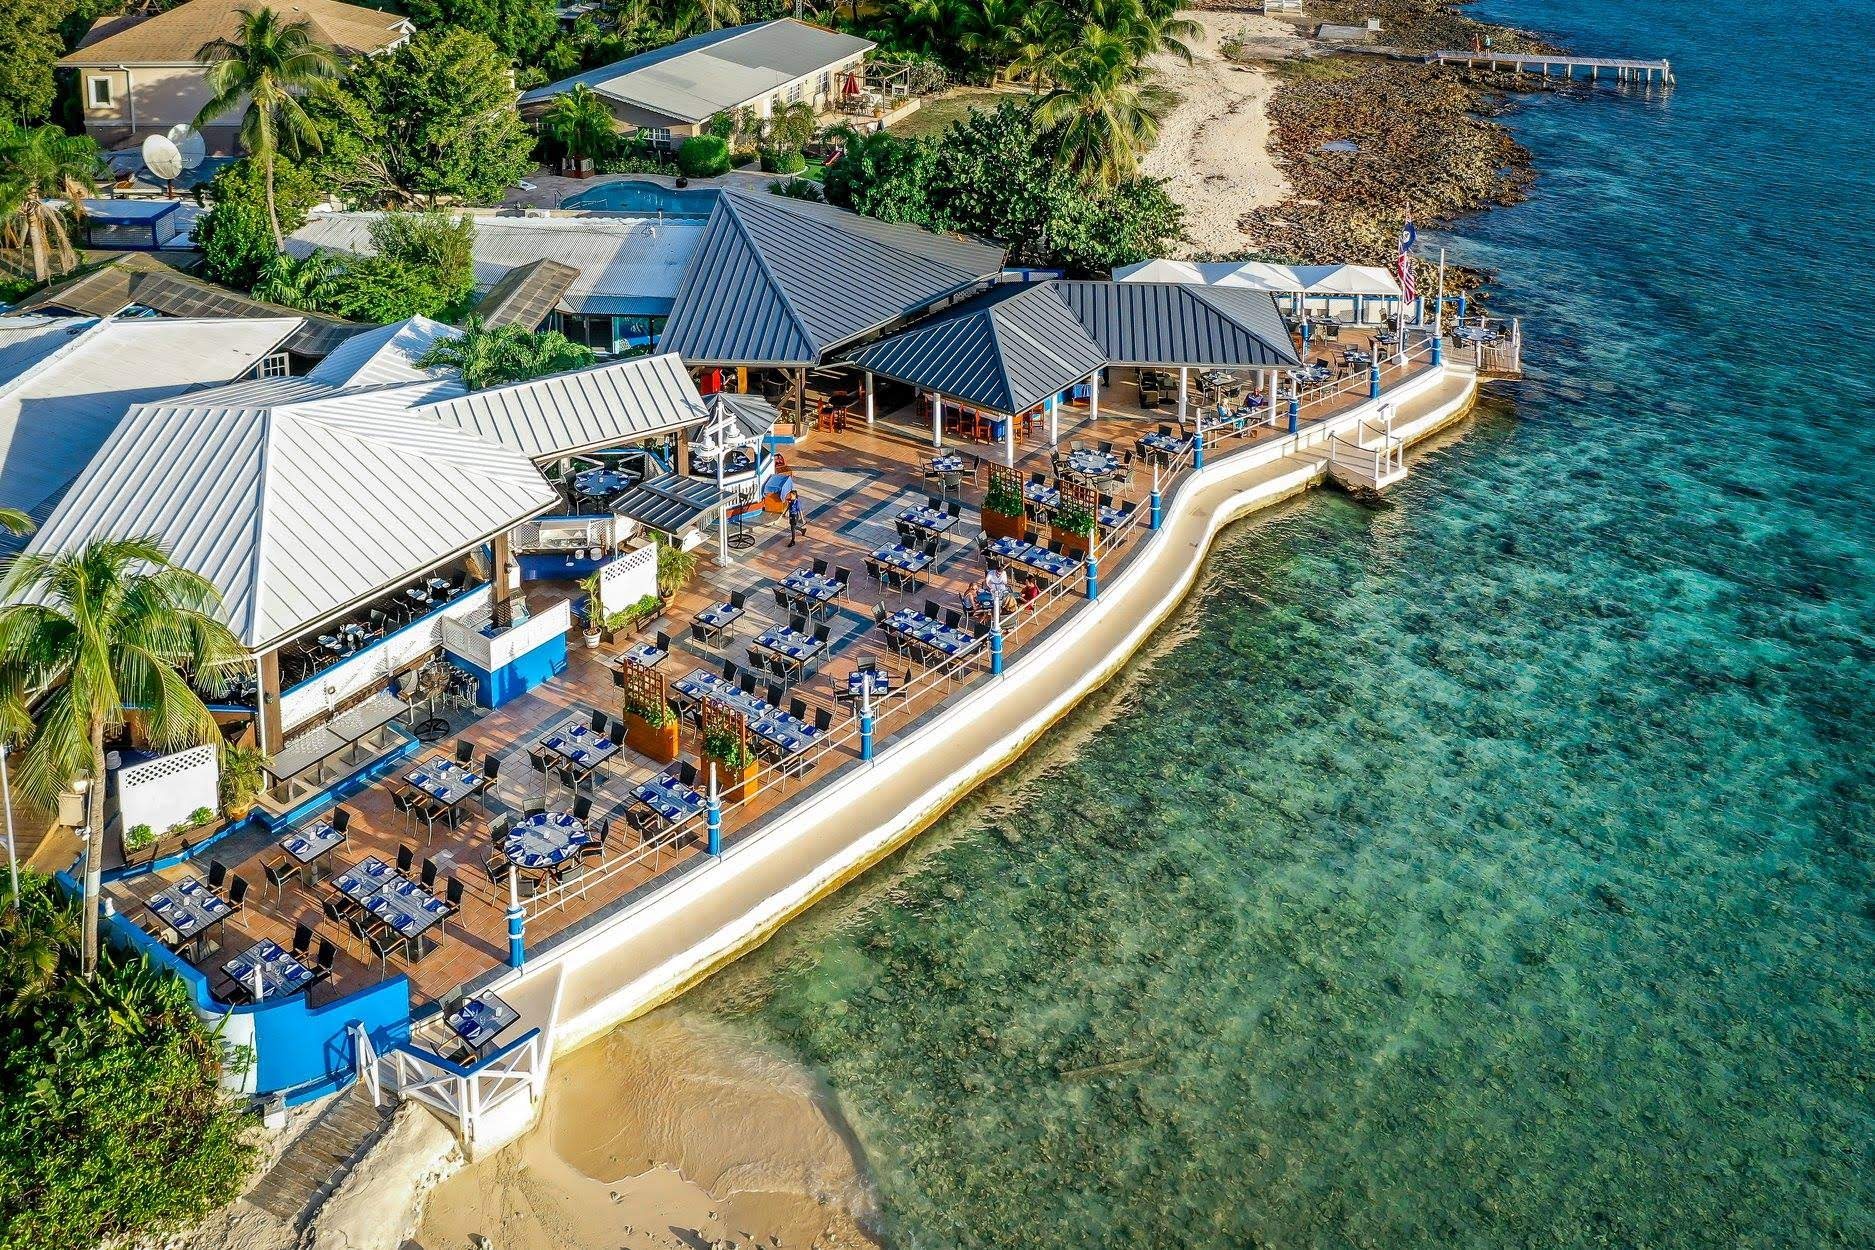 Drone shot of The Wharf Cayman